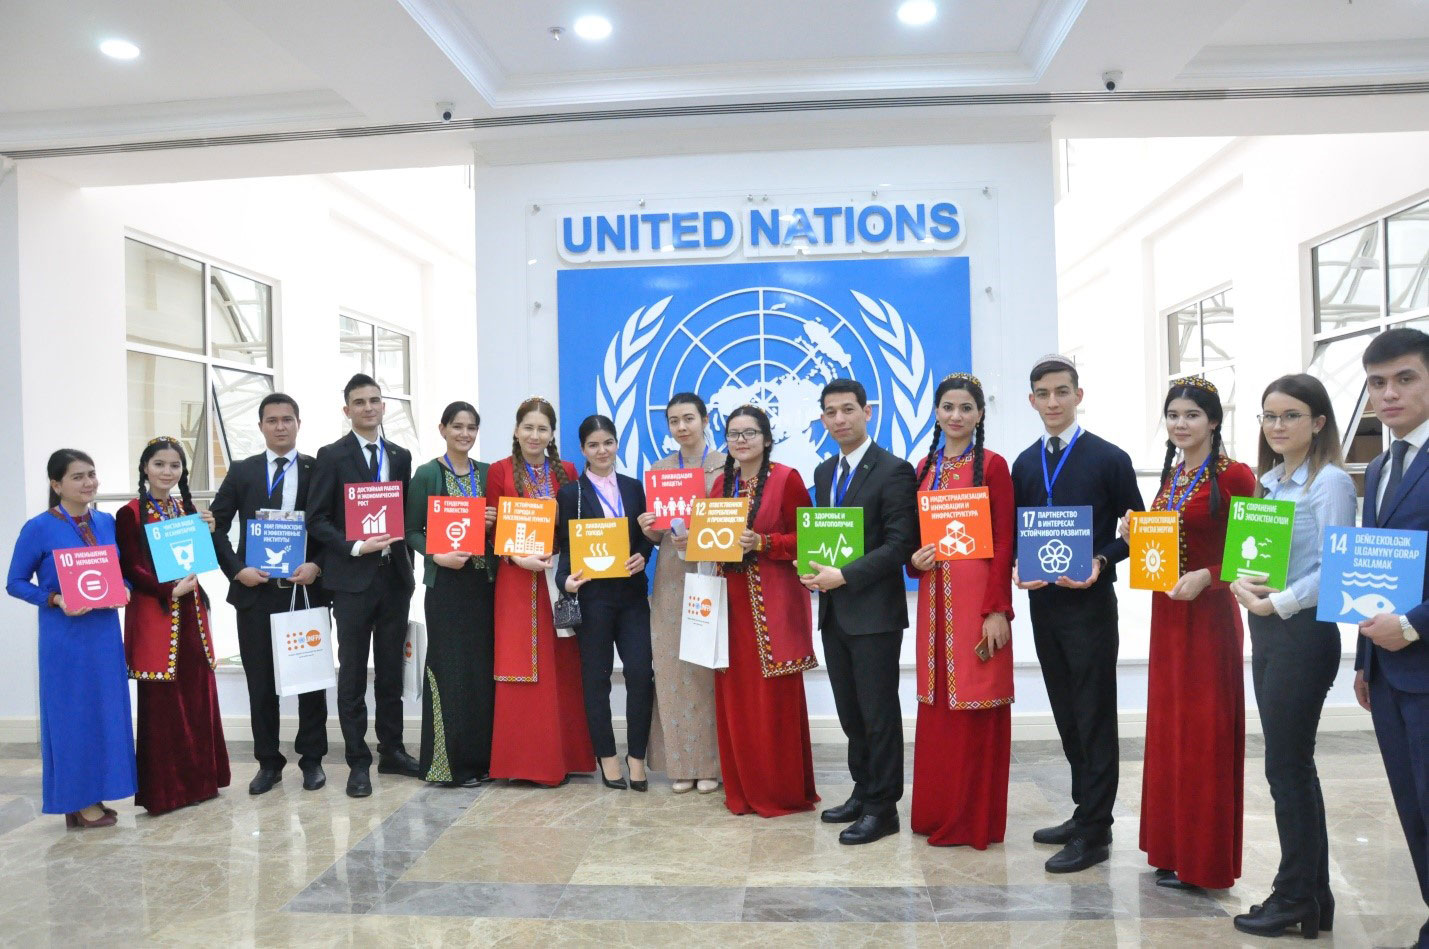 Young SDG Ambassadors to advocate for Agenda 2030 in Turkmenistan